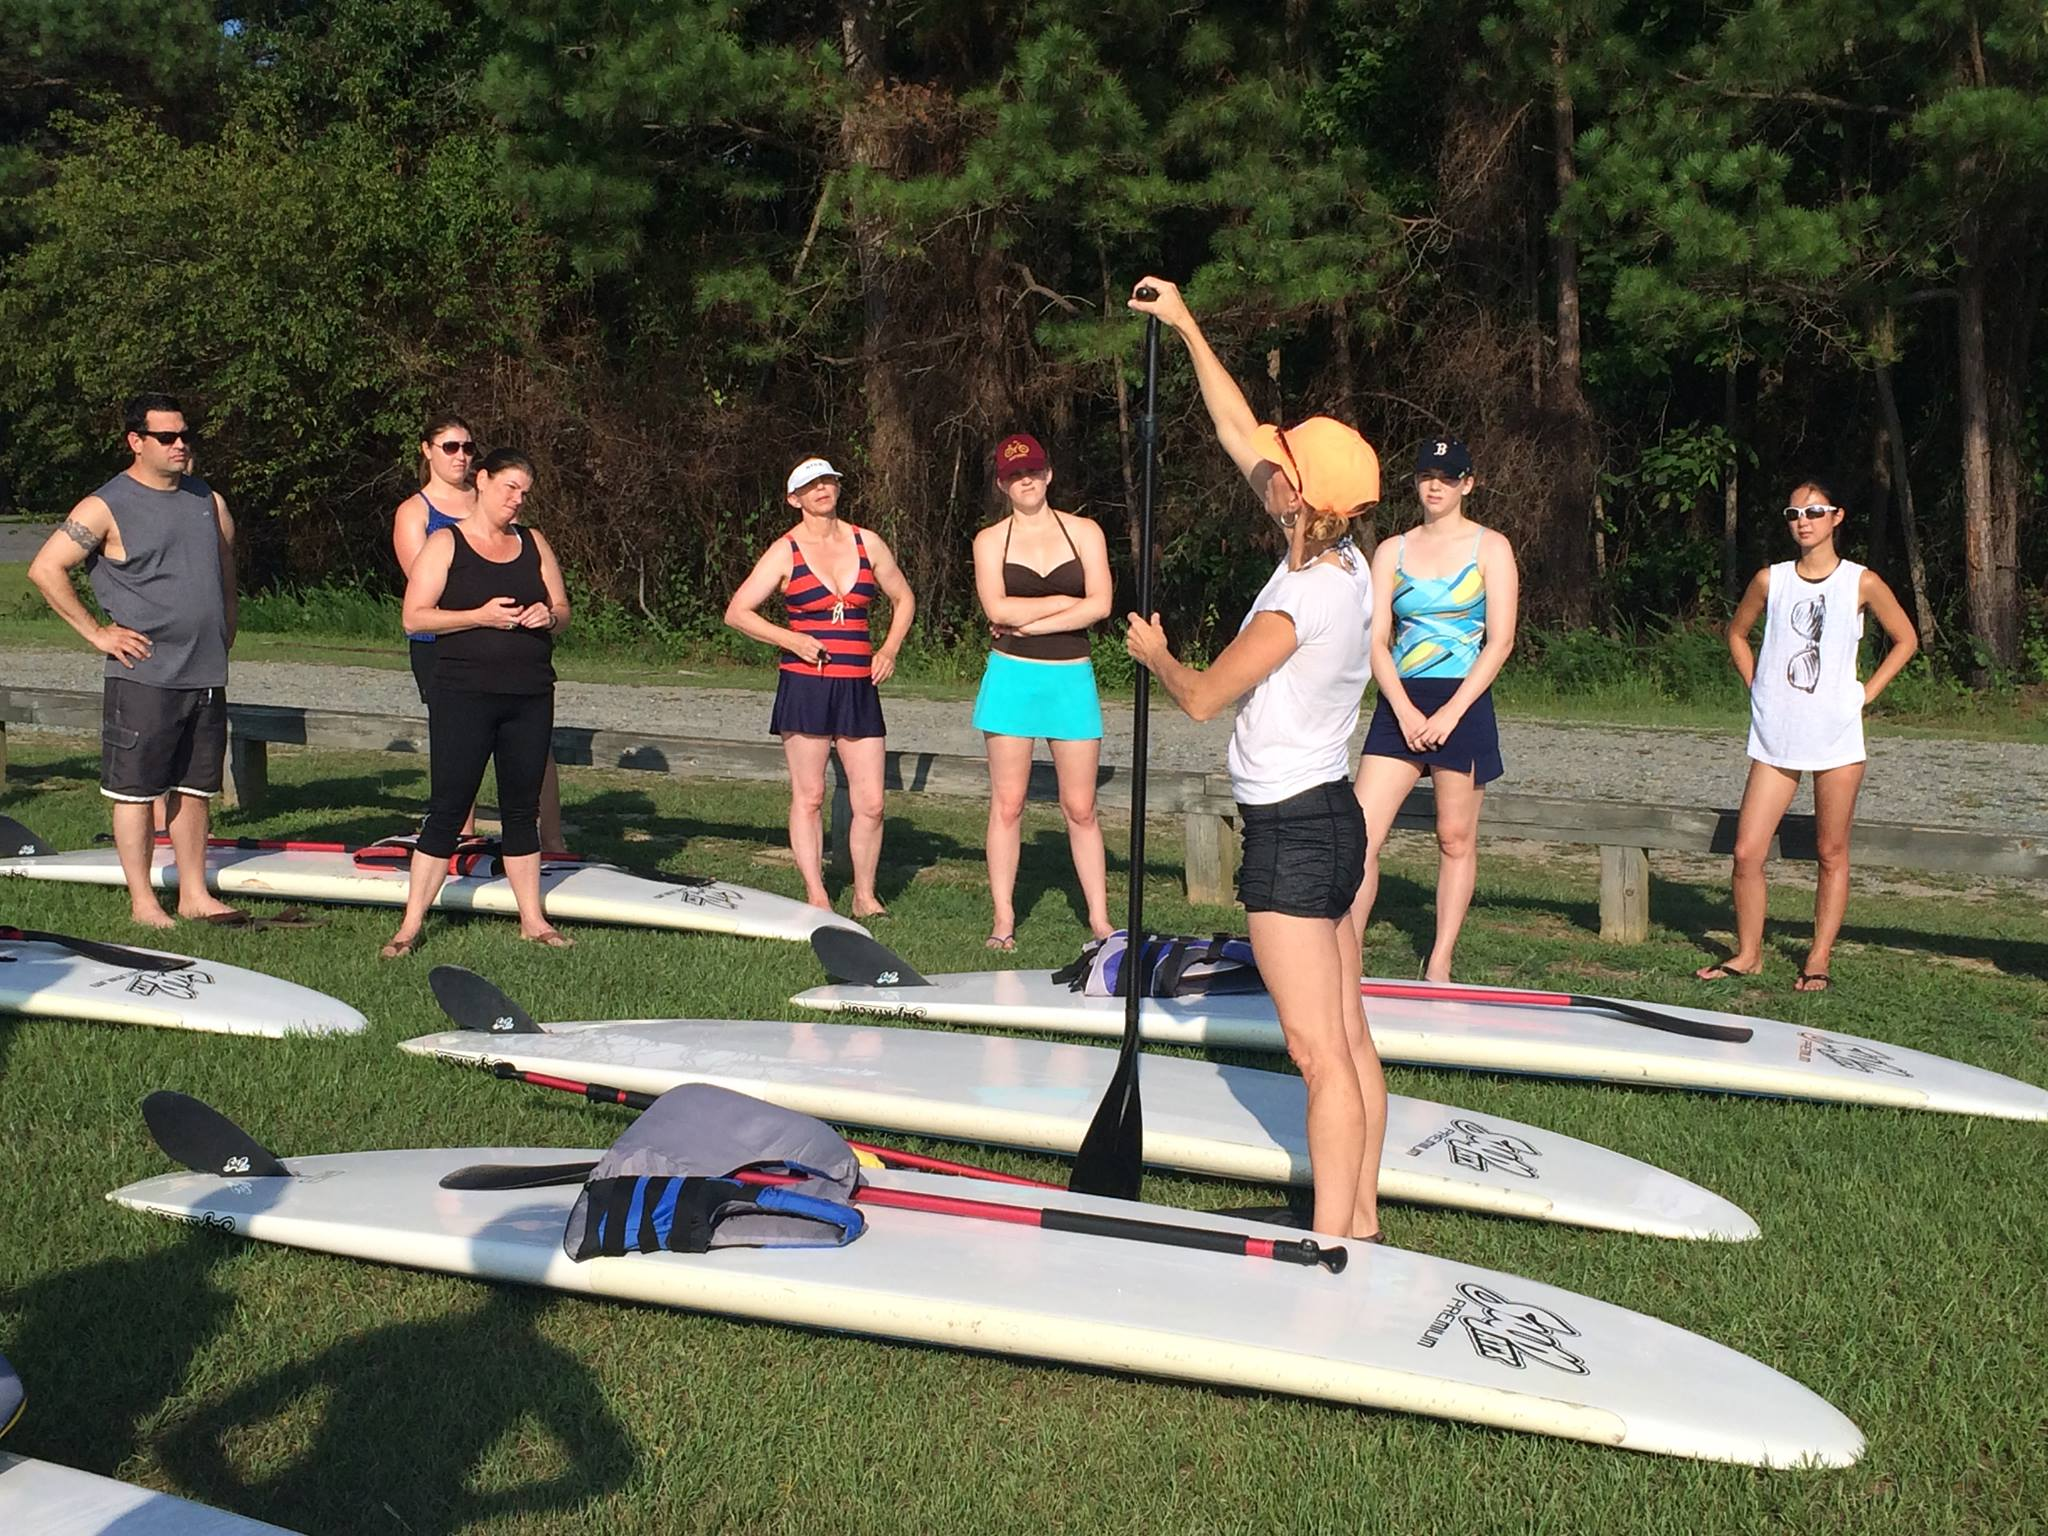 Maria Finnegan's SUP Class basics before hitting the water